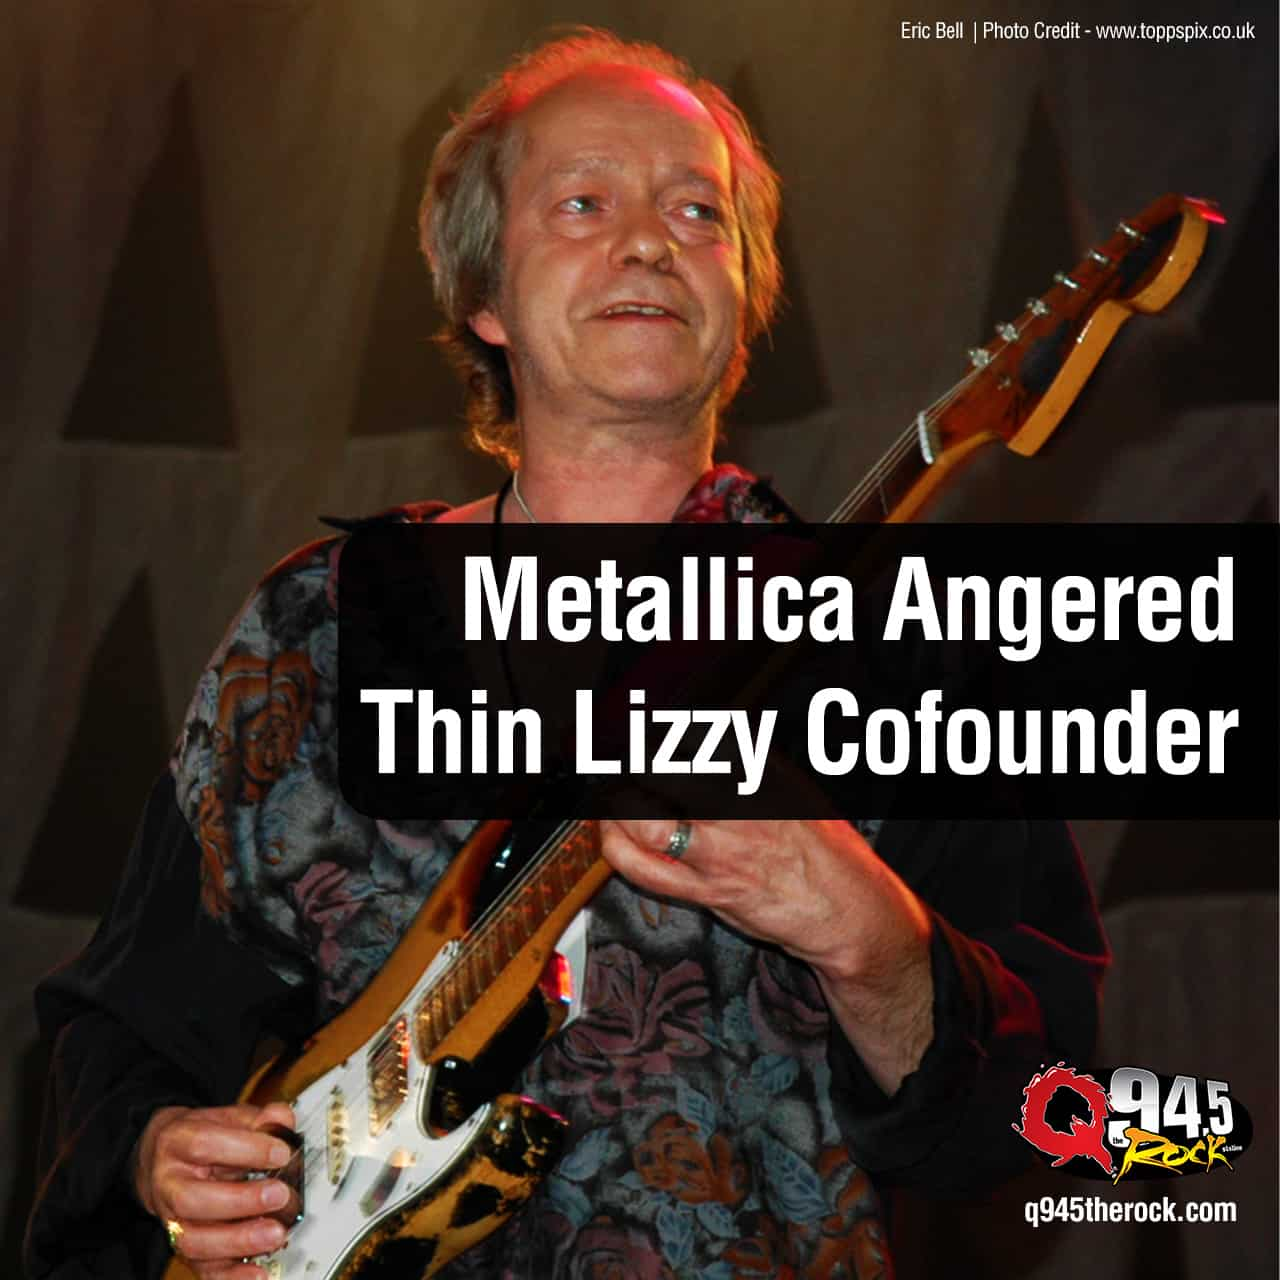 Metallica Angered Thin Lizzy Cofounder